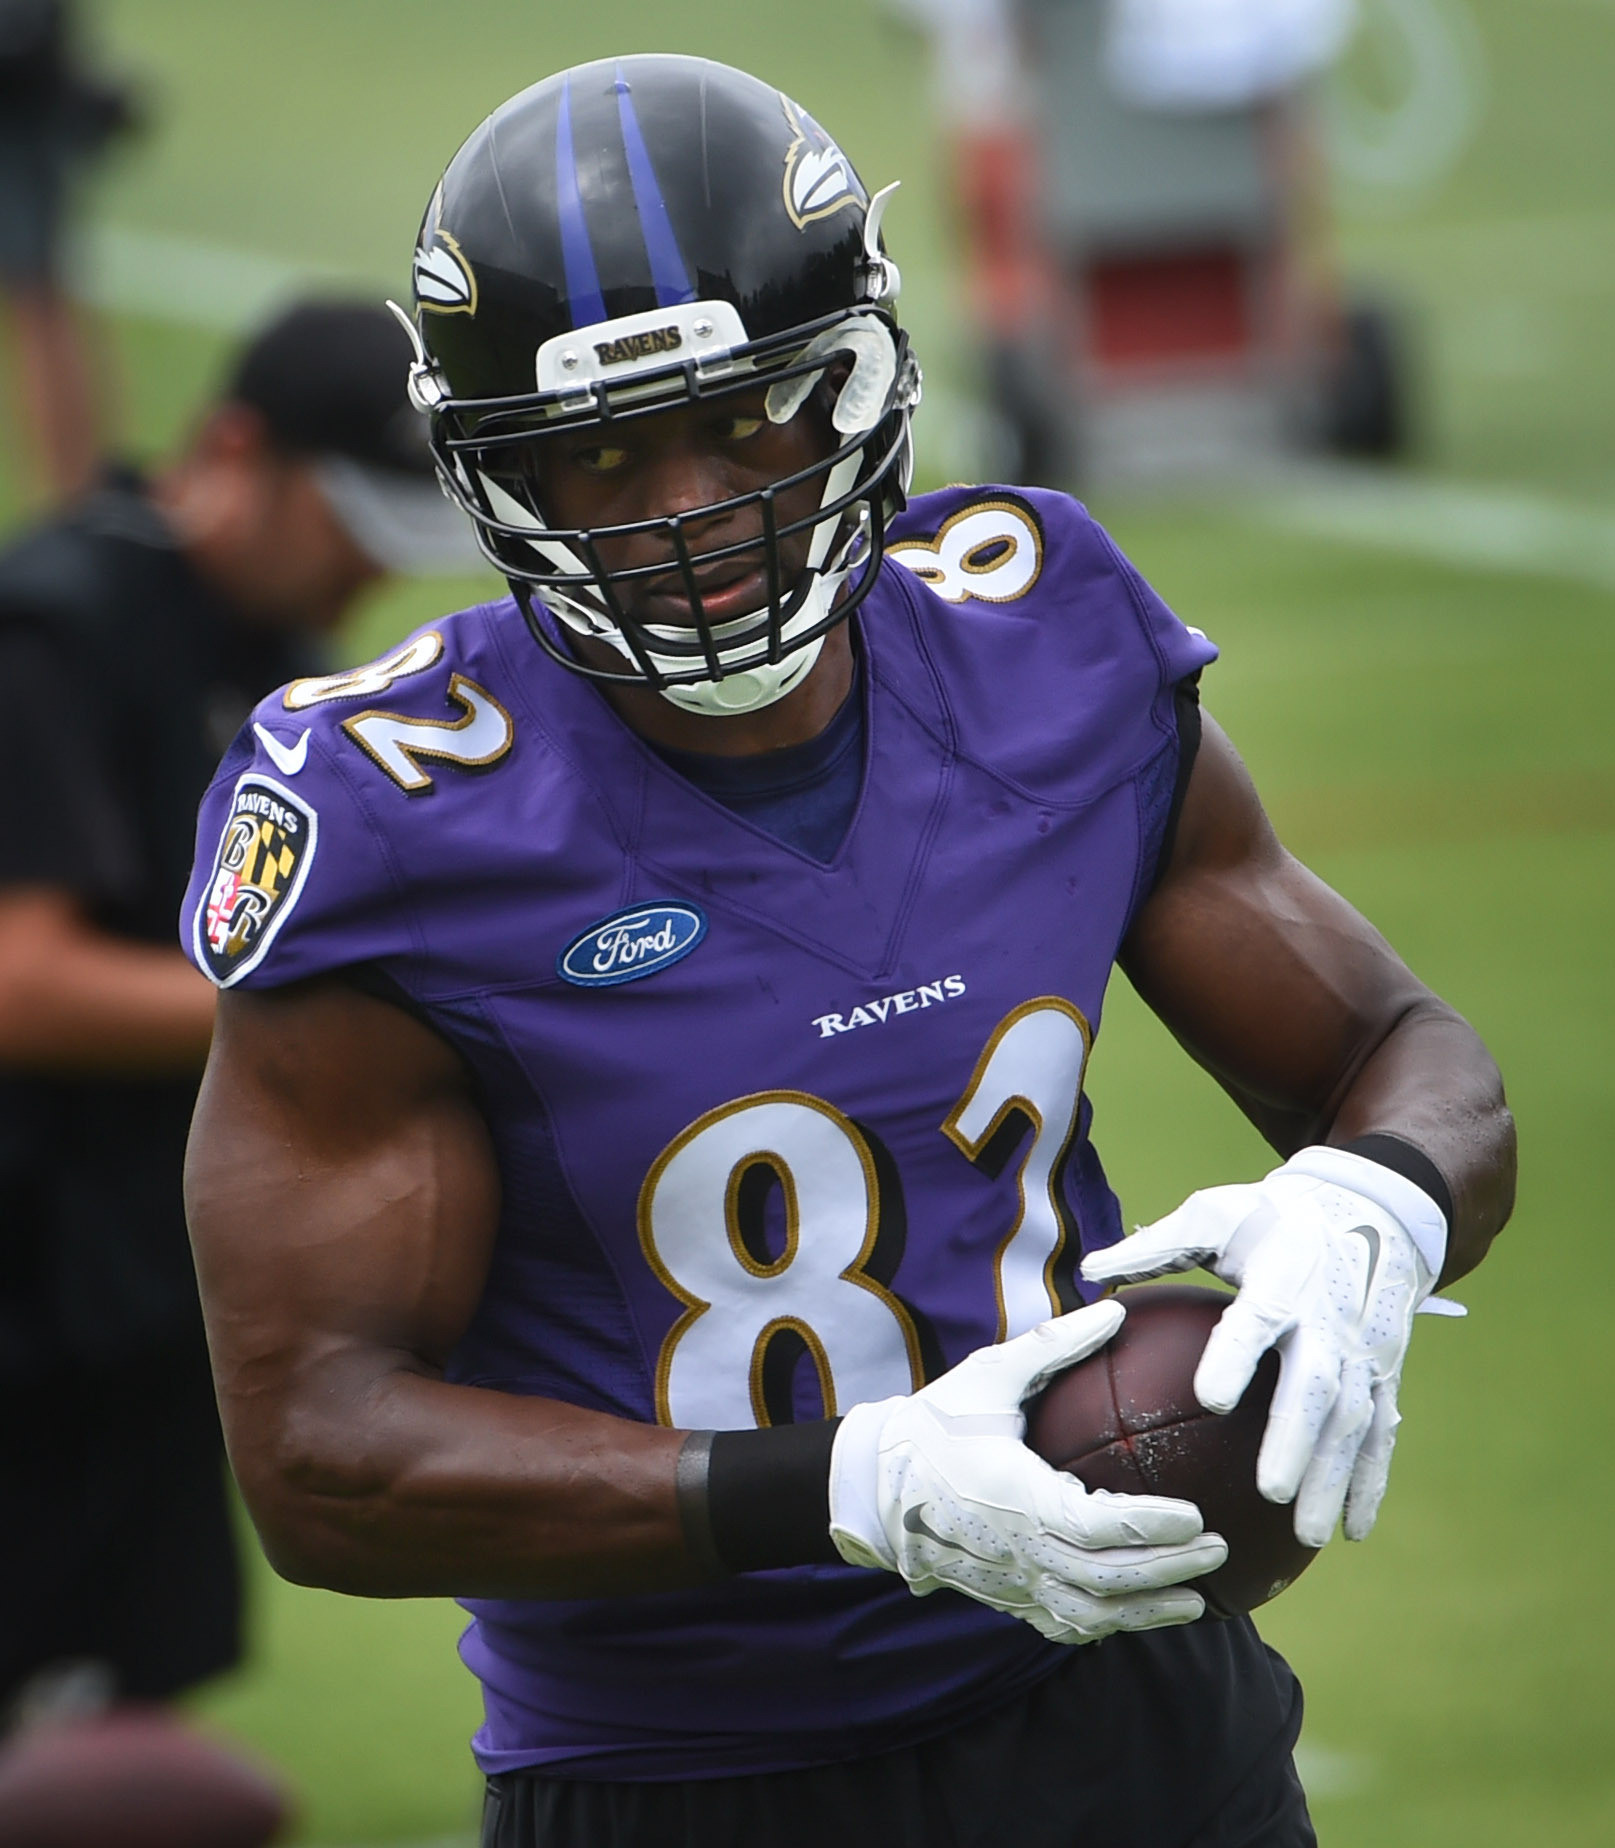 Benjamin Watson clarifies his role in inquiring about Ravens' CBA ...